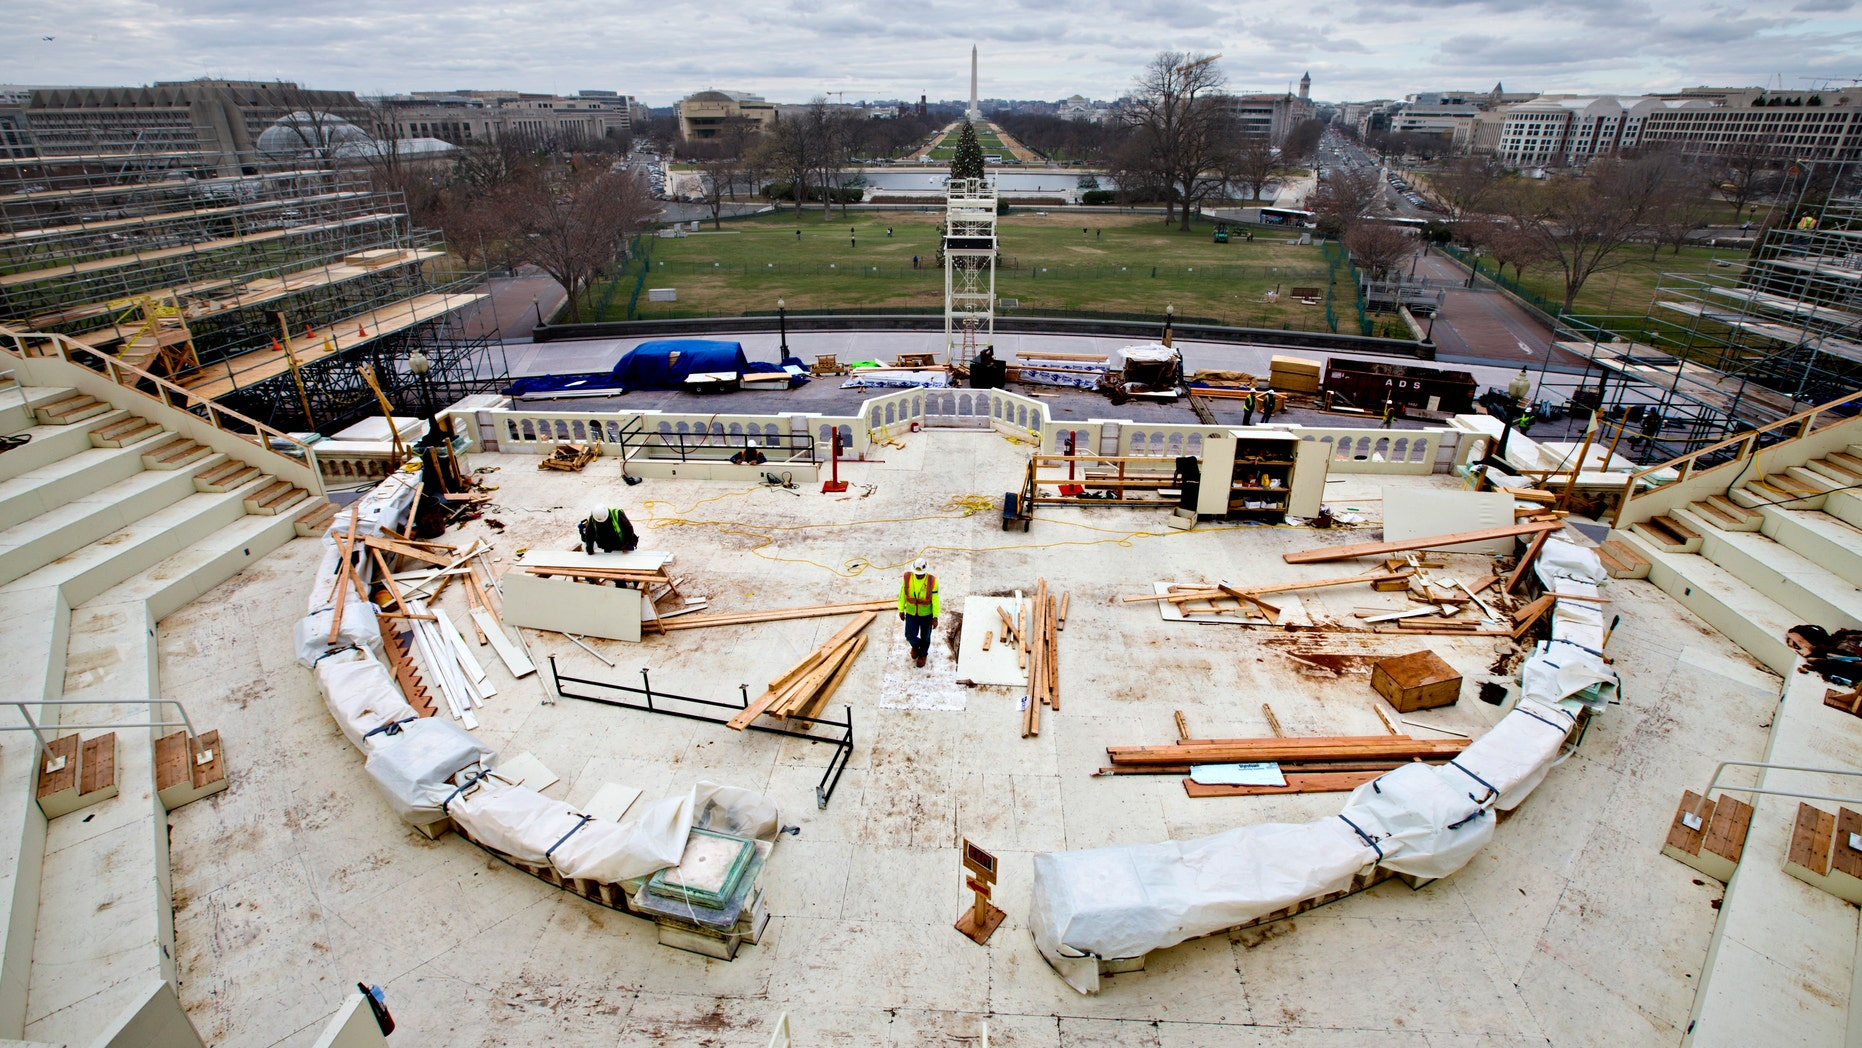 In this Dec. 11, 2012 file photo, construction workers continue work on the platforms on the west side of the Capitol where dignitaries and news cameras will witness the inaugural ceremonies on Capitol Hill in Washington. (AP Photo/J. Scott Applewhite, File)